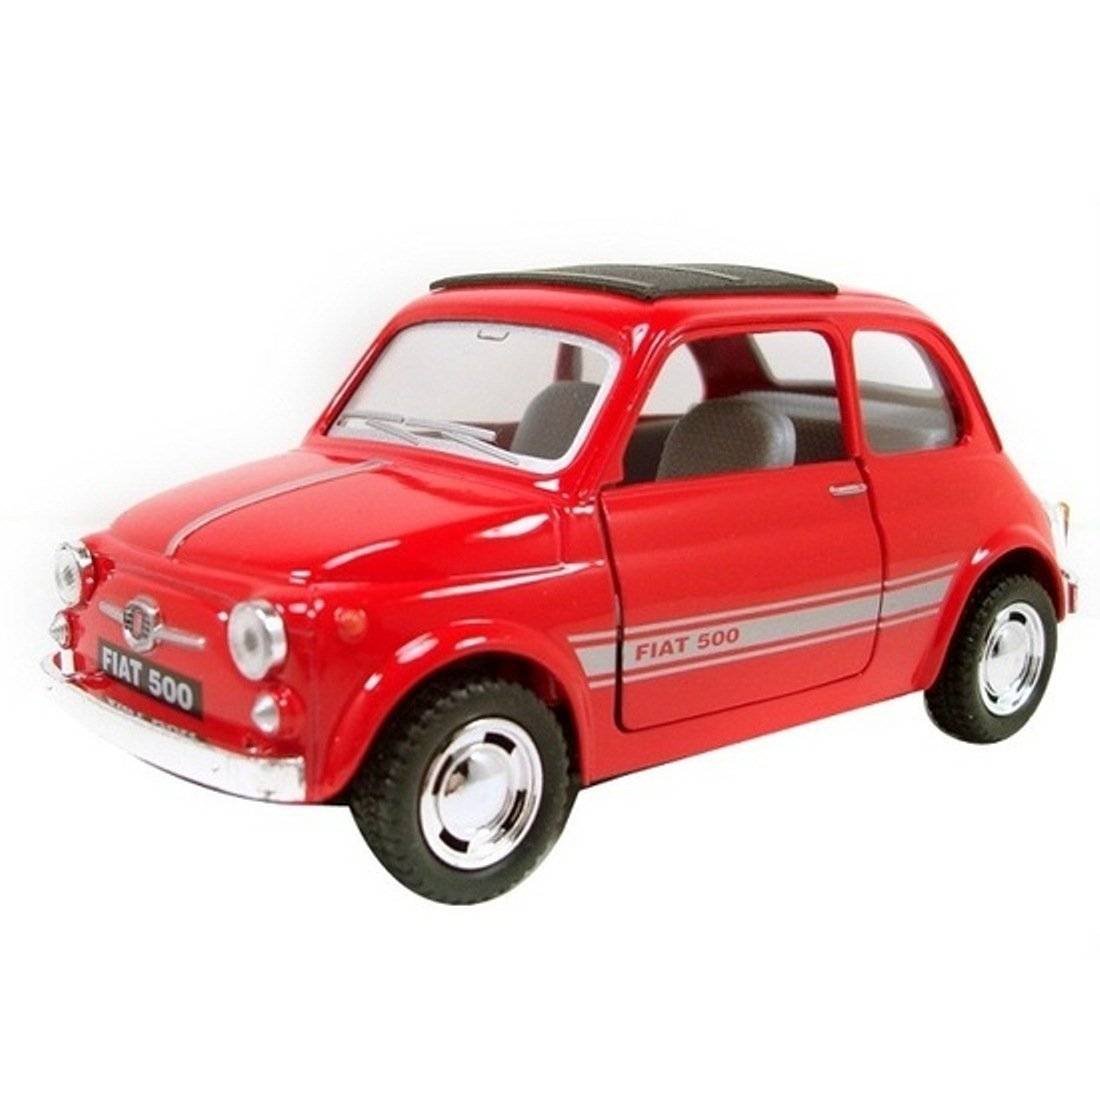 Buy Kinsmart Fiat 500 124 Scale Diecast Car Online At Low Prices In 1954 For Sale India